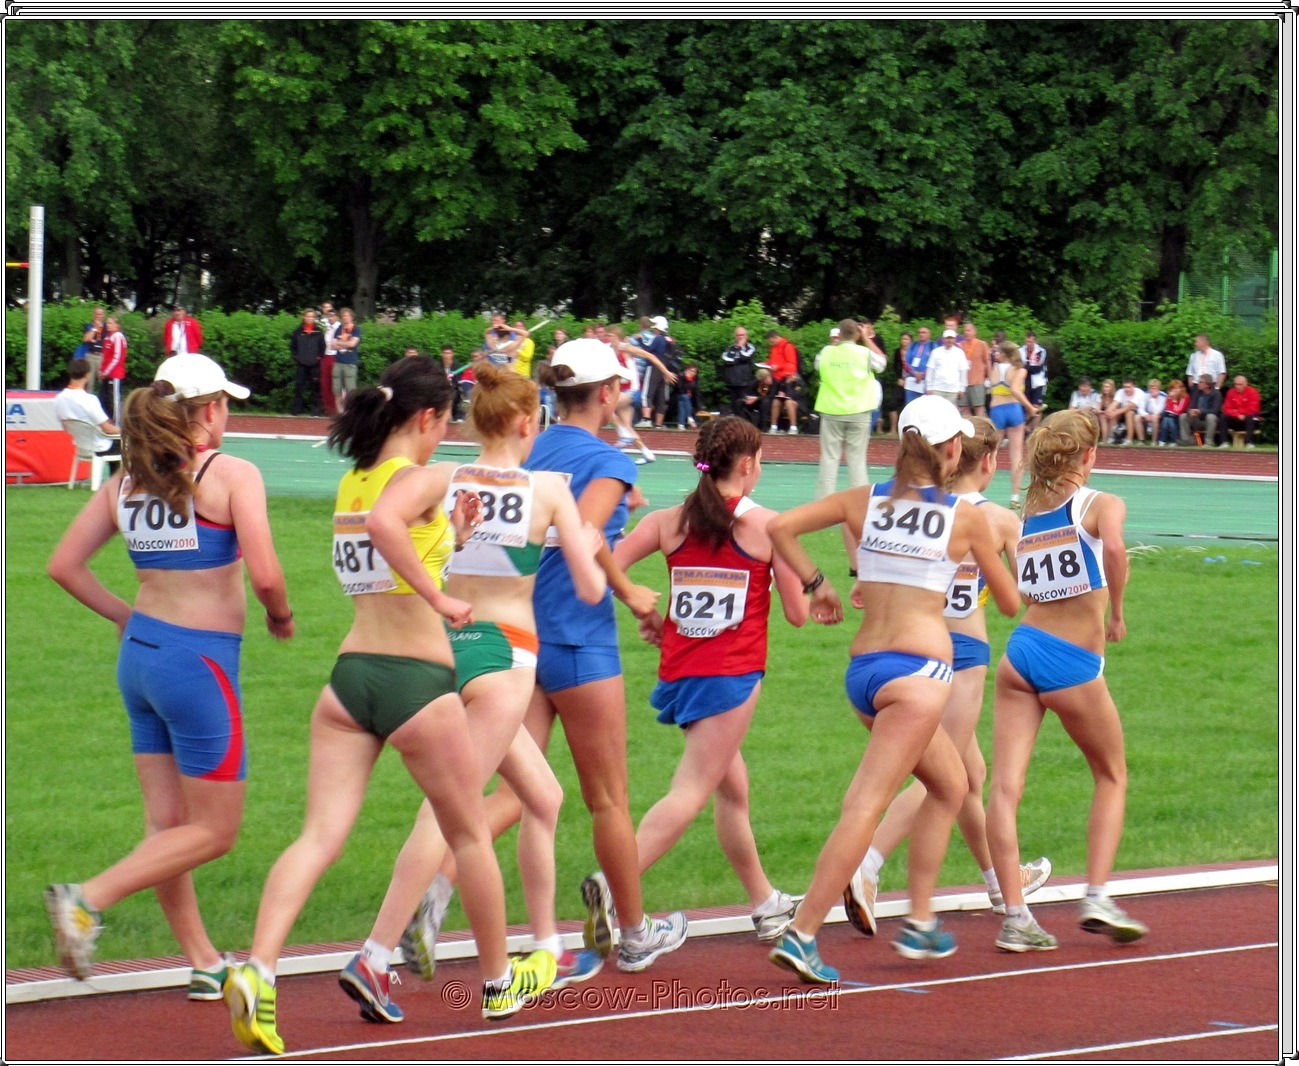 Sprint Long Distance at European Youth Olympic Trials 2010